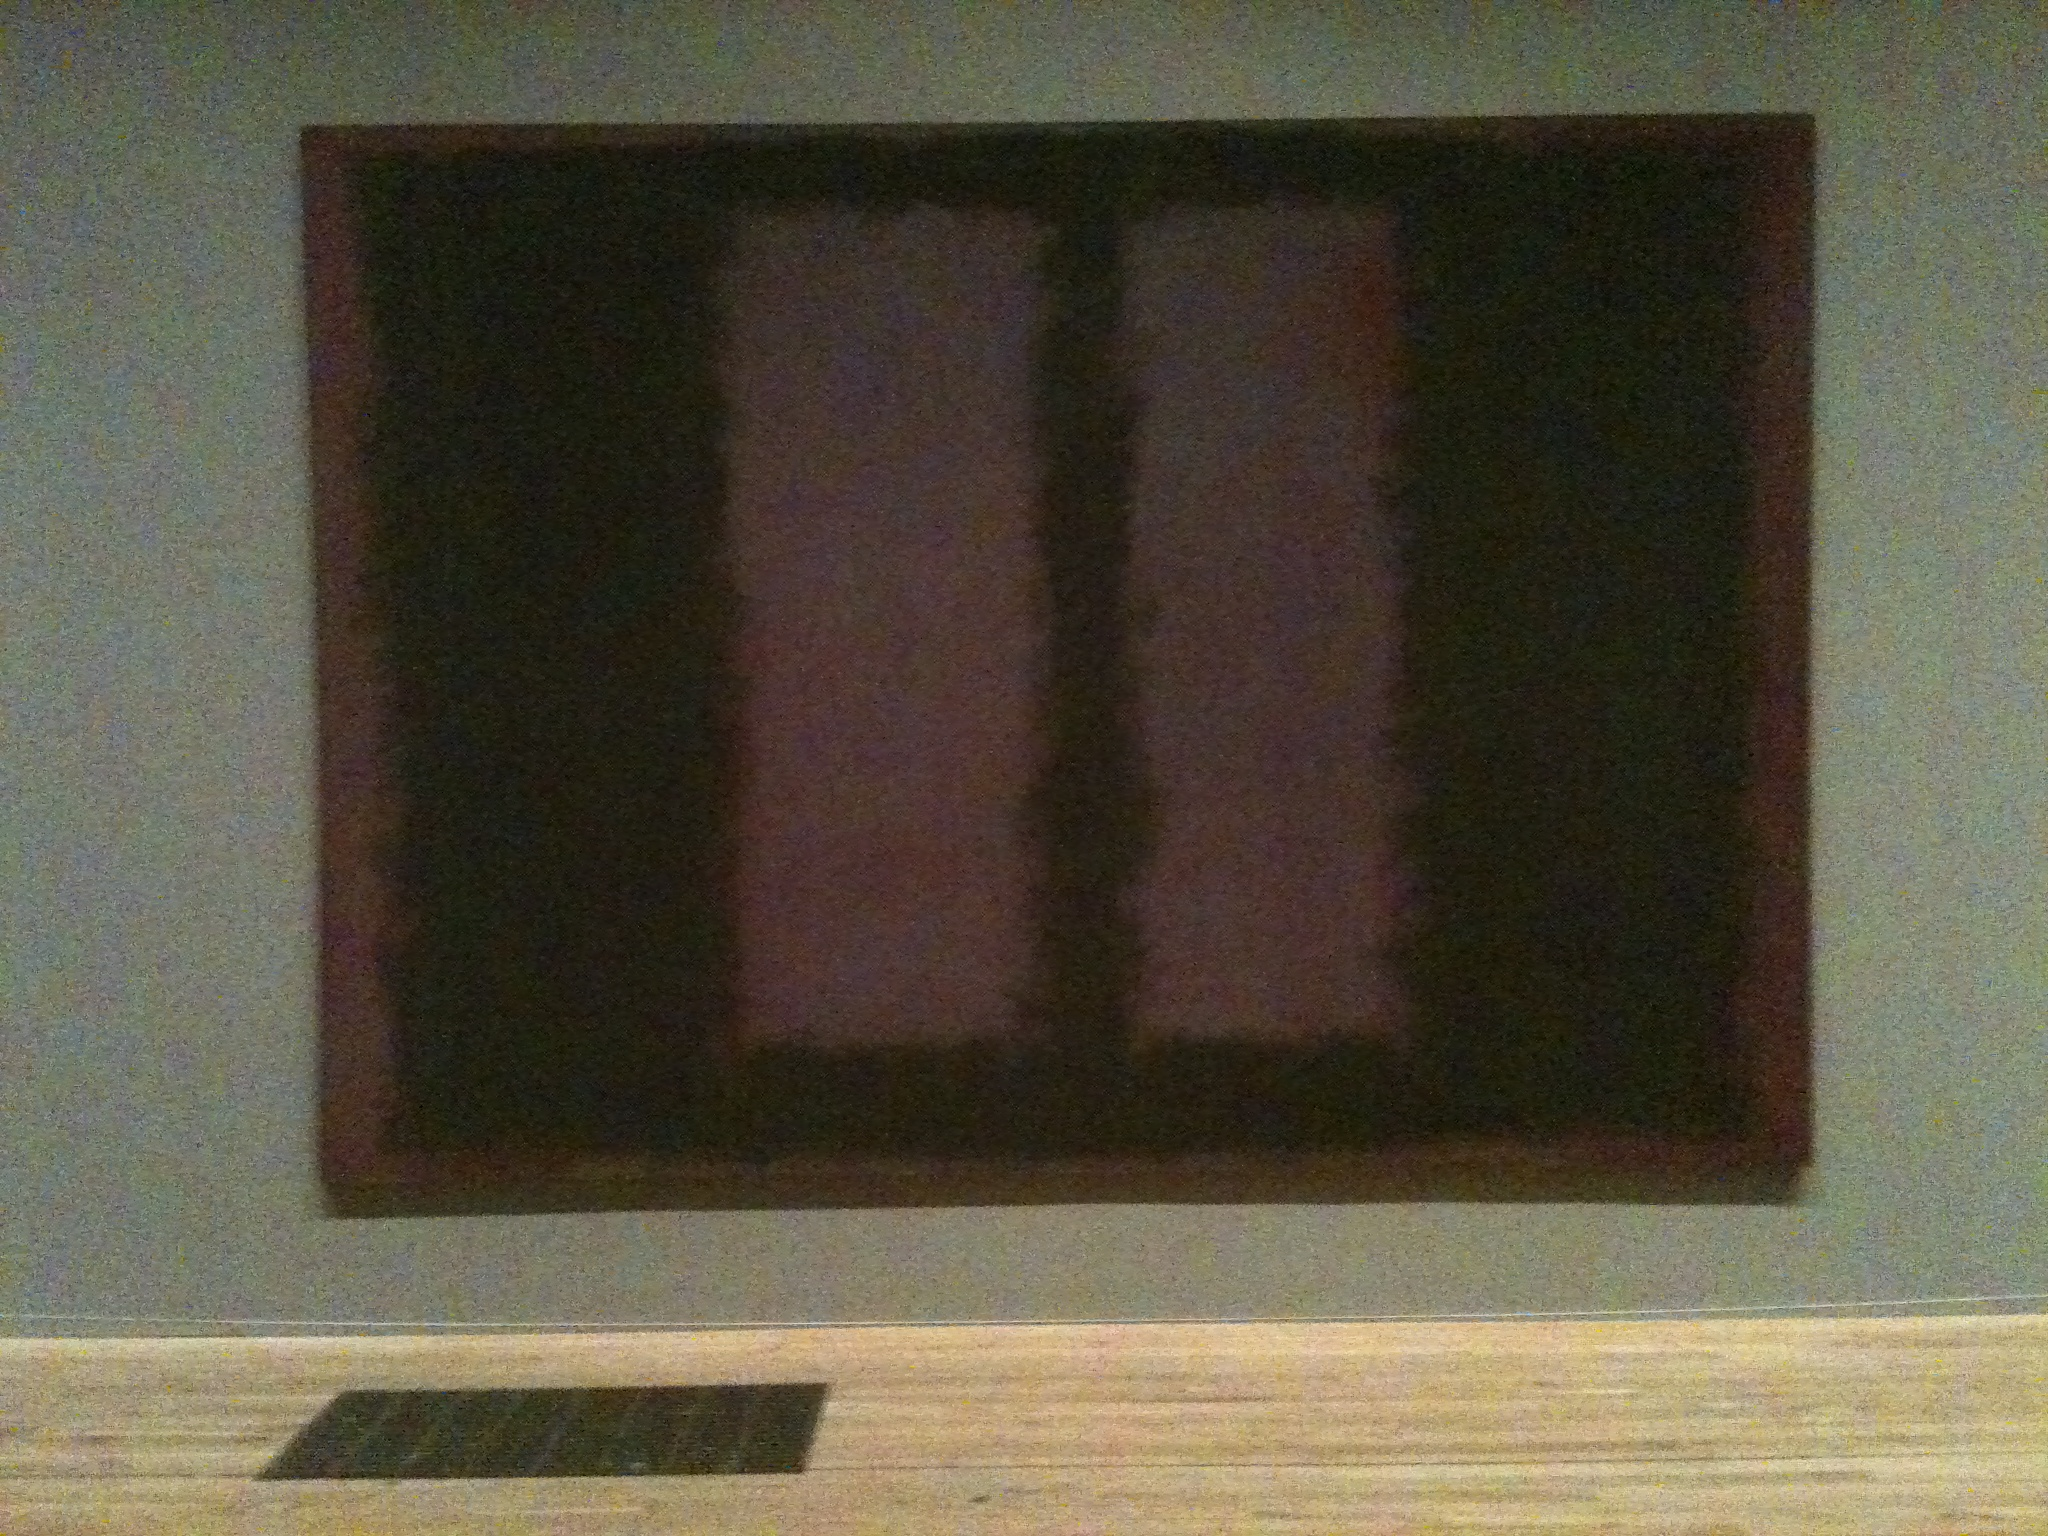 From the Rothko room at the Tate Modern. Rothko   Hywel W  Sims